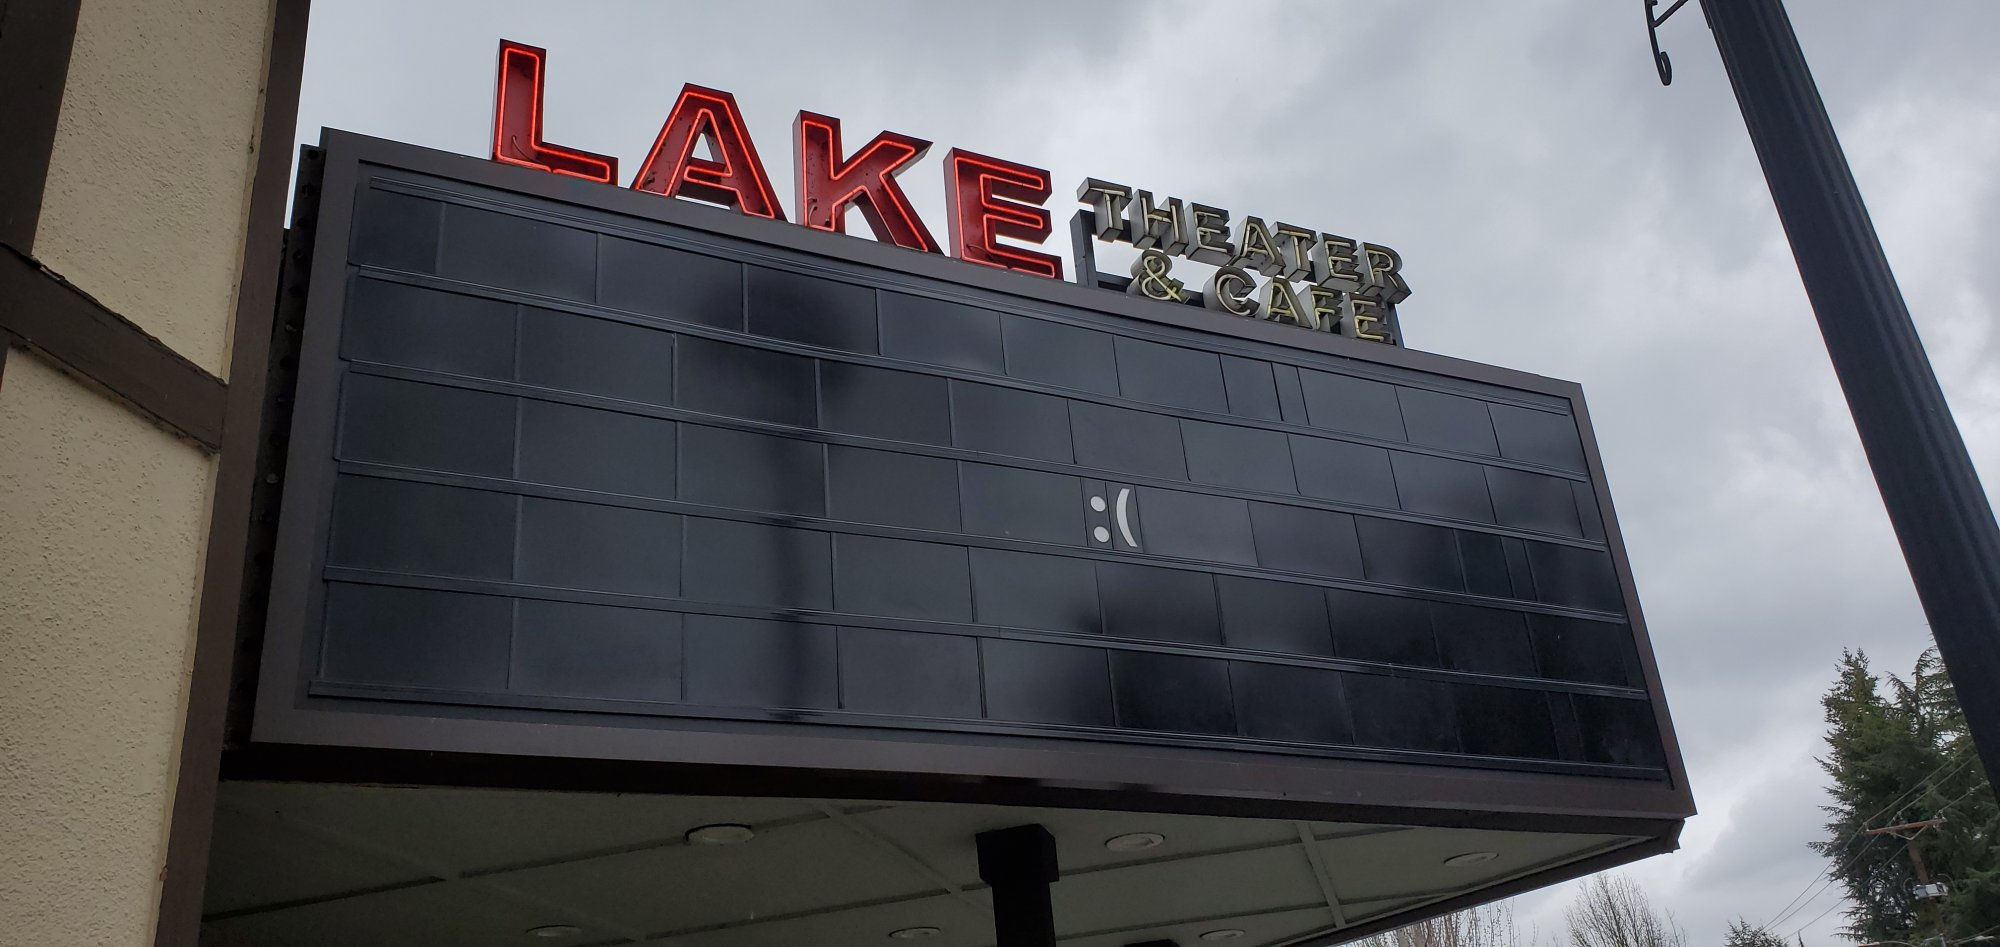 lake theater.jpg